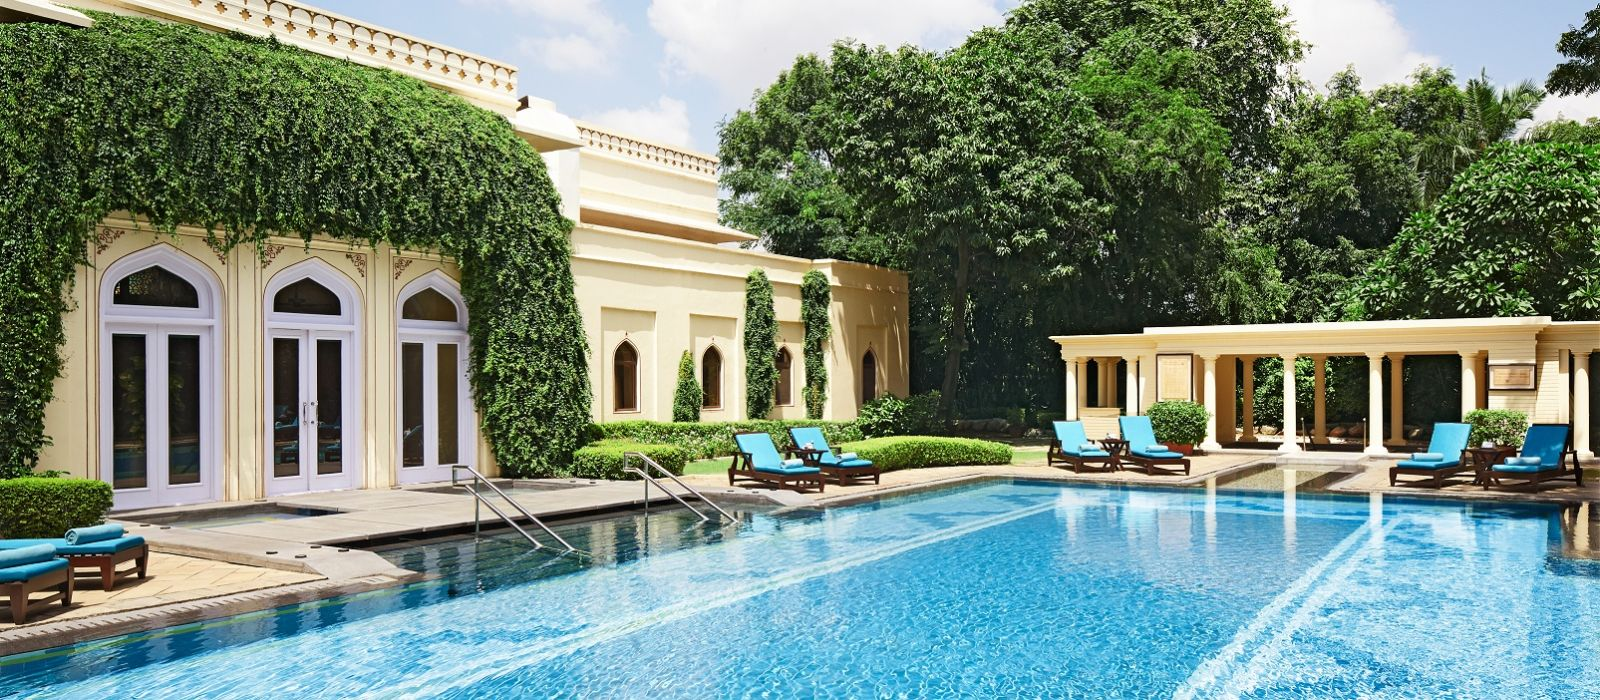 Hotel Taj Rambagh Palace North India